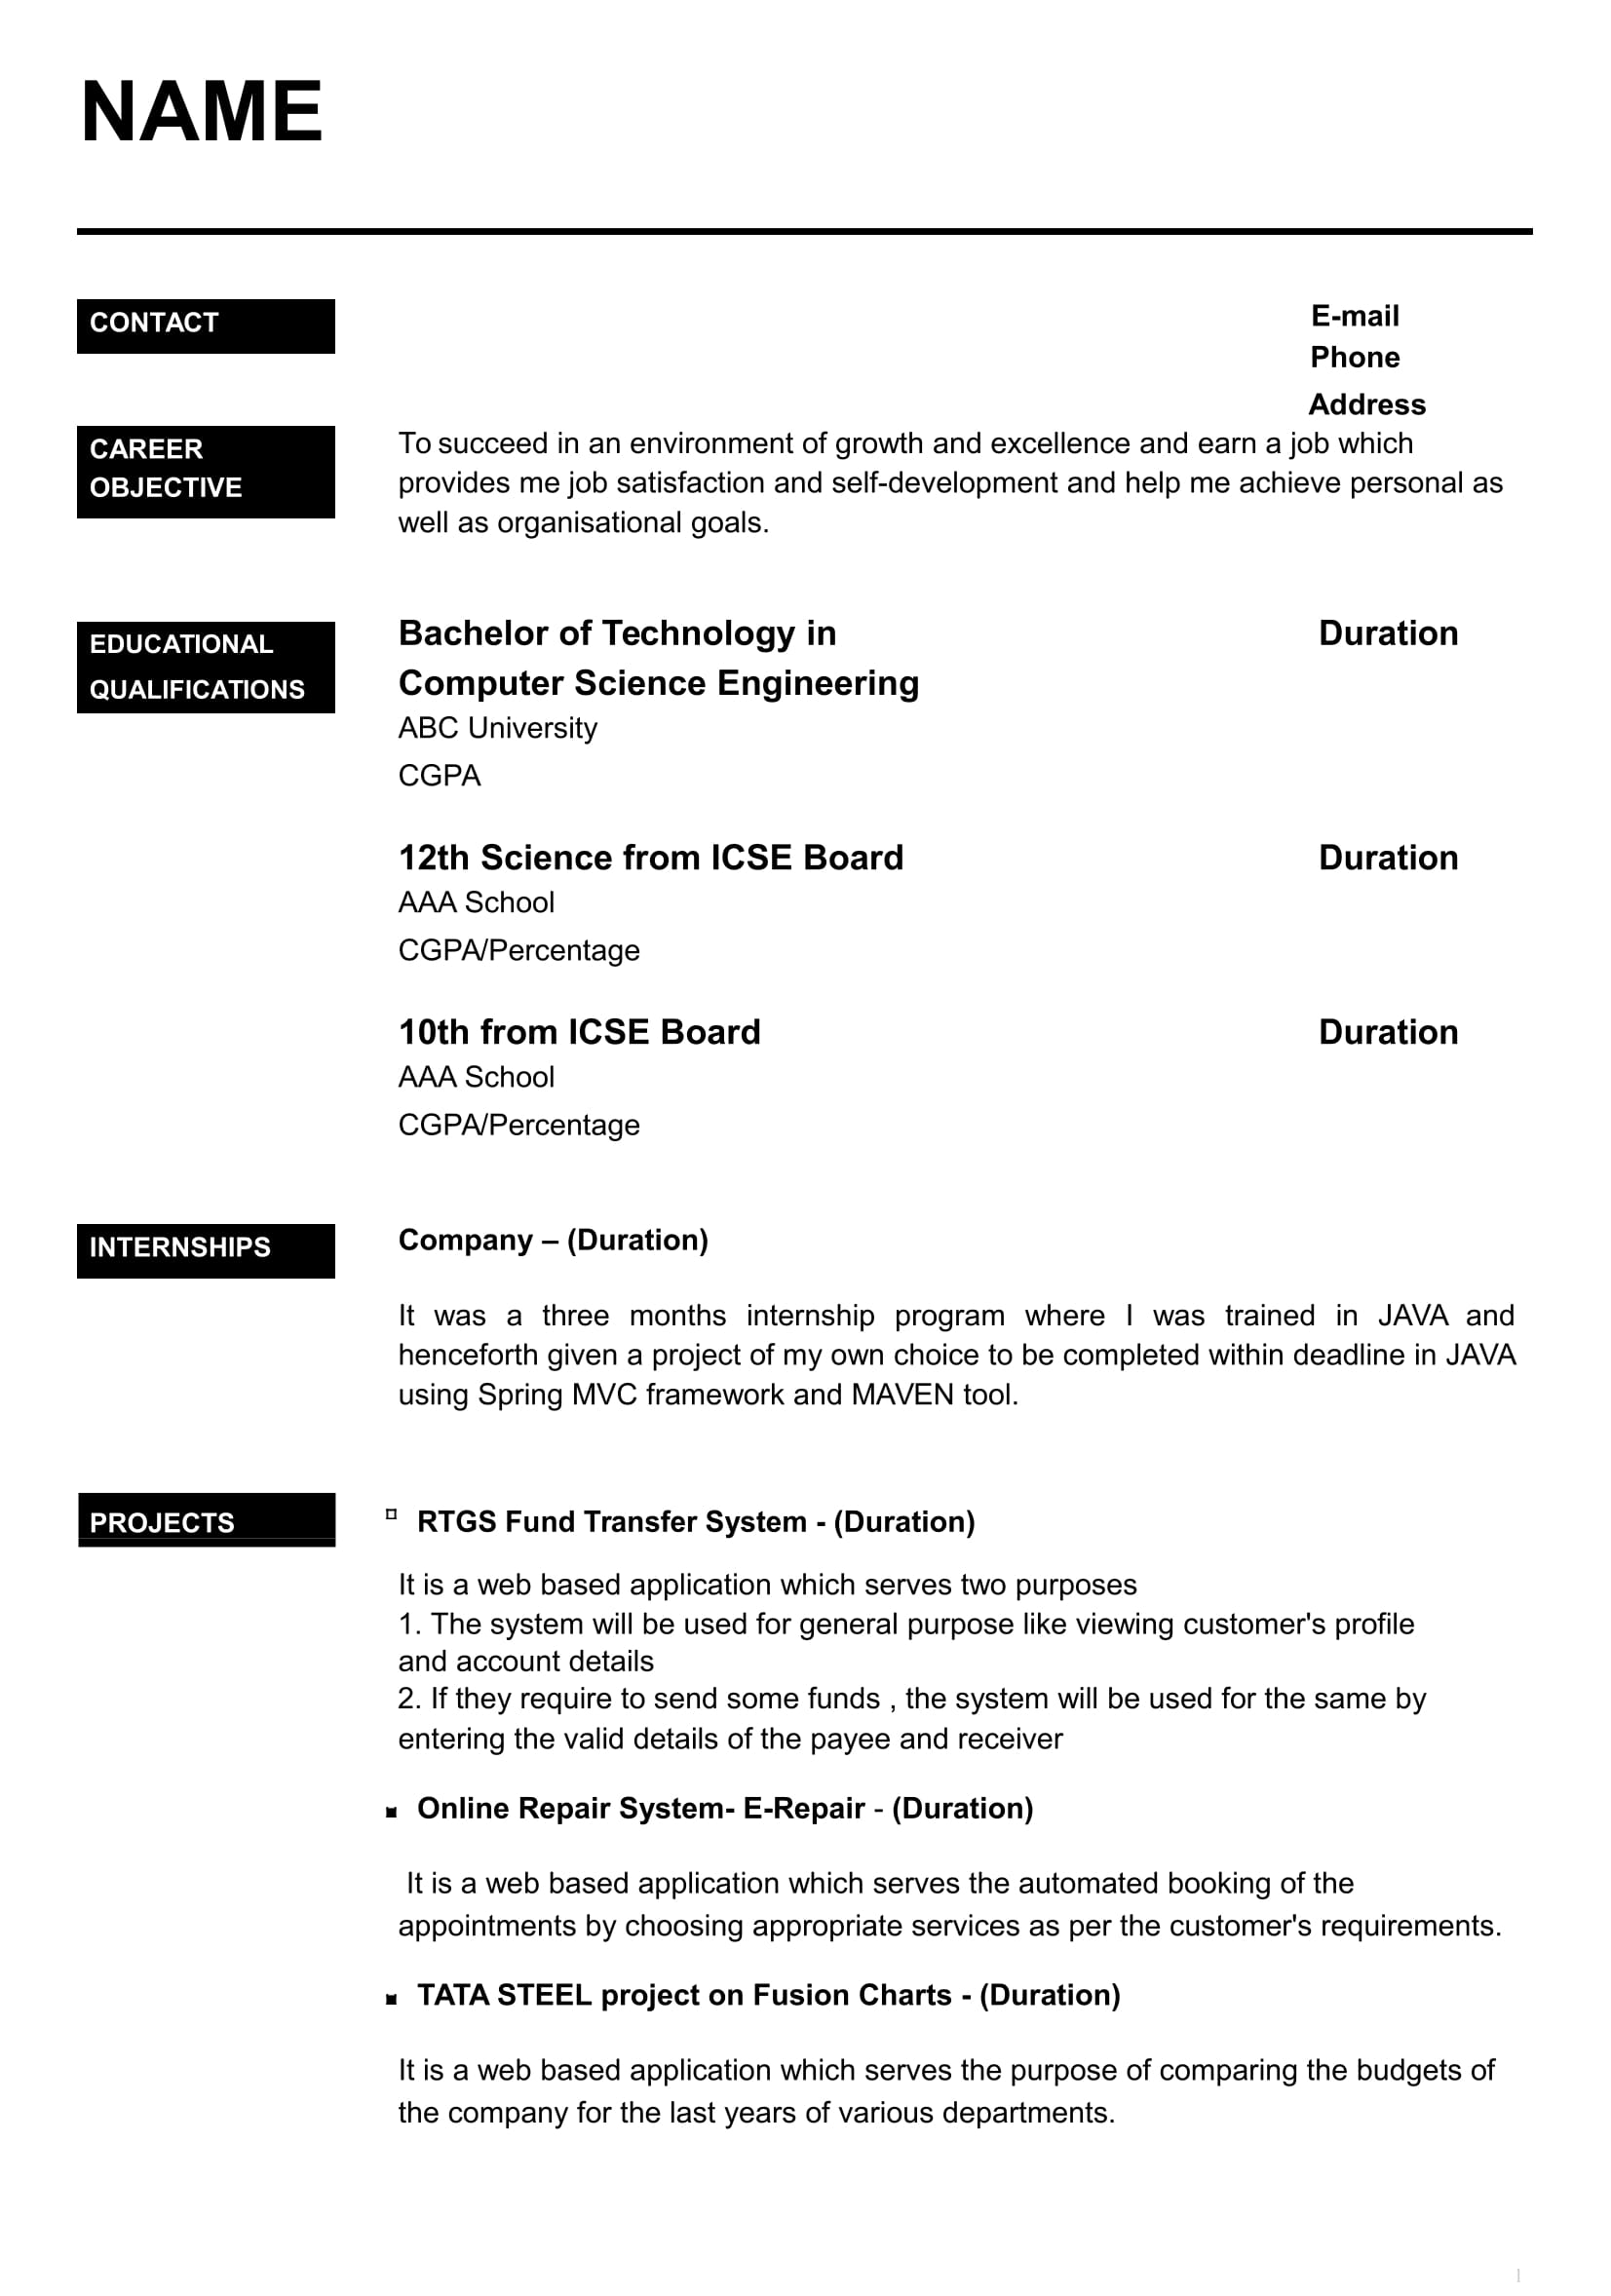 Resume Download Template Free 32 Resume Templates For Freshers Download Free Word Format